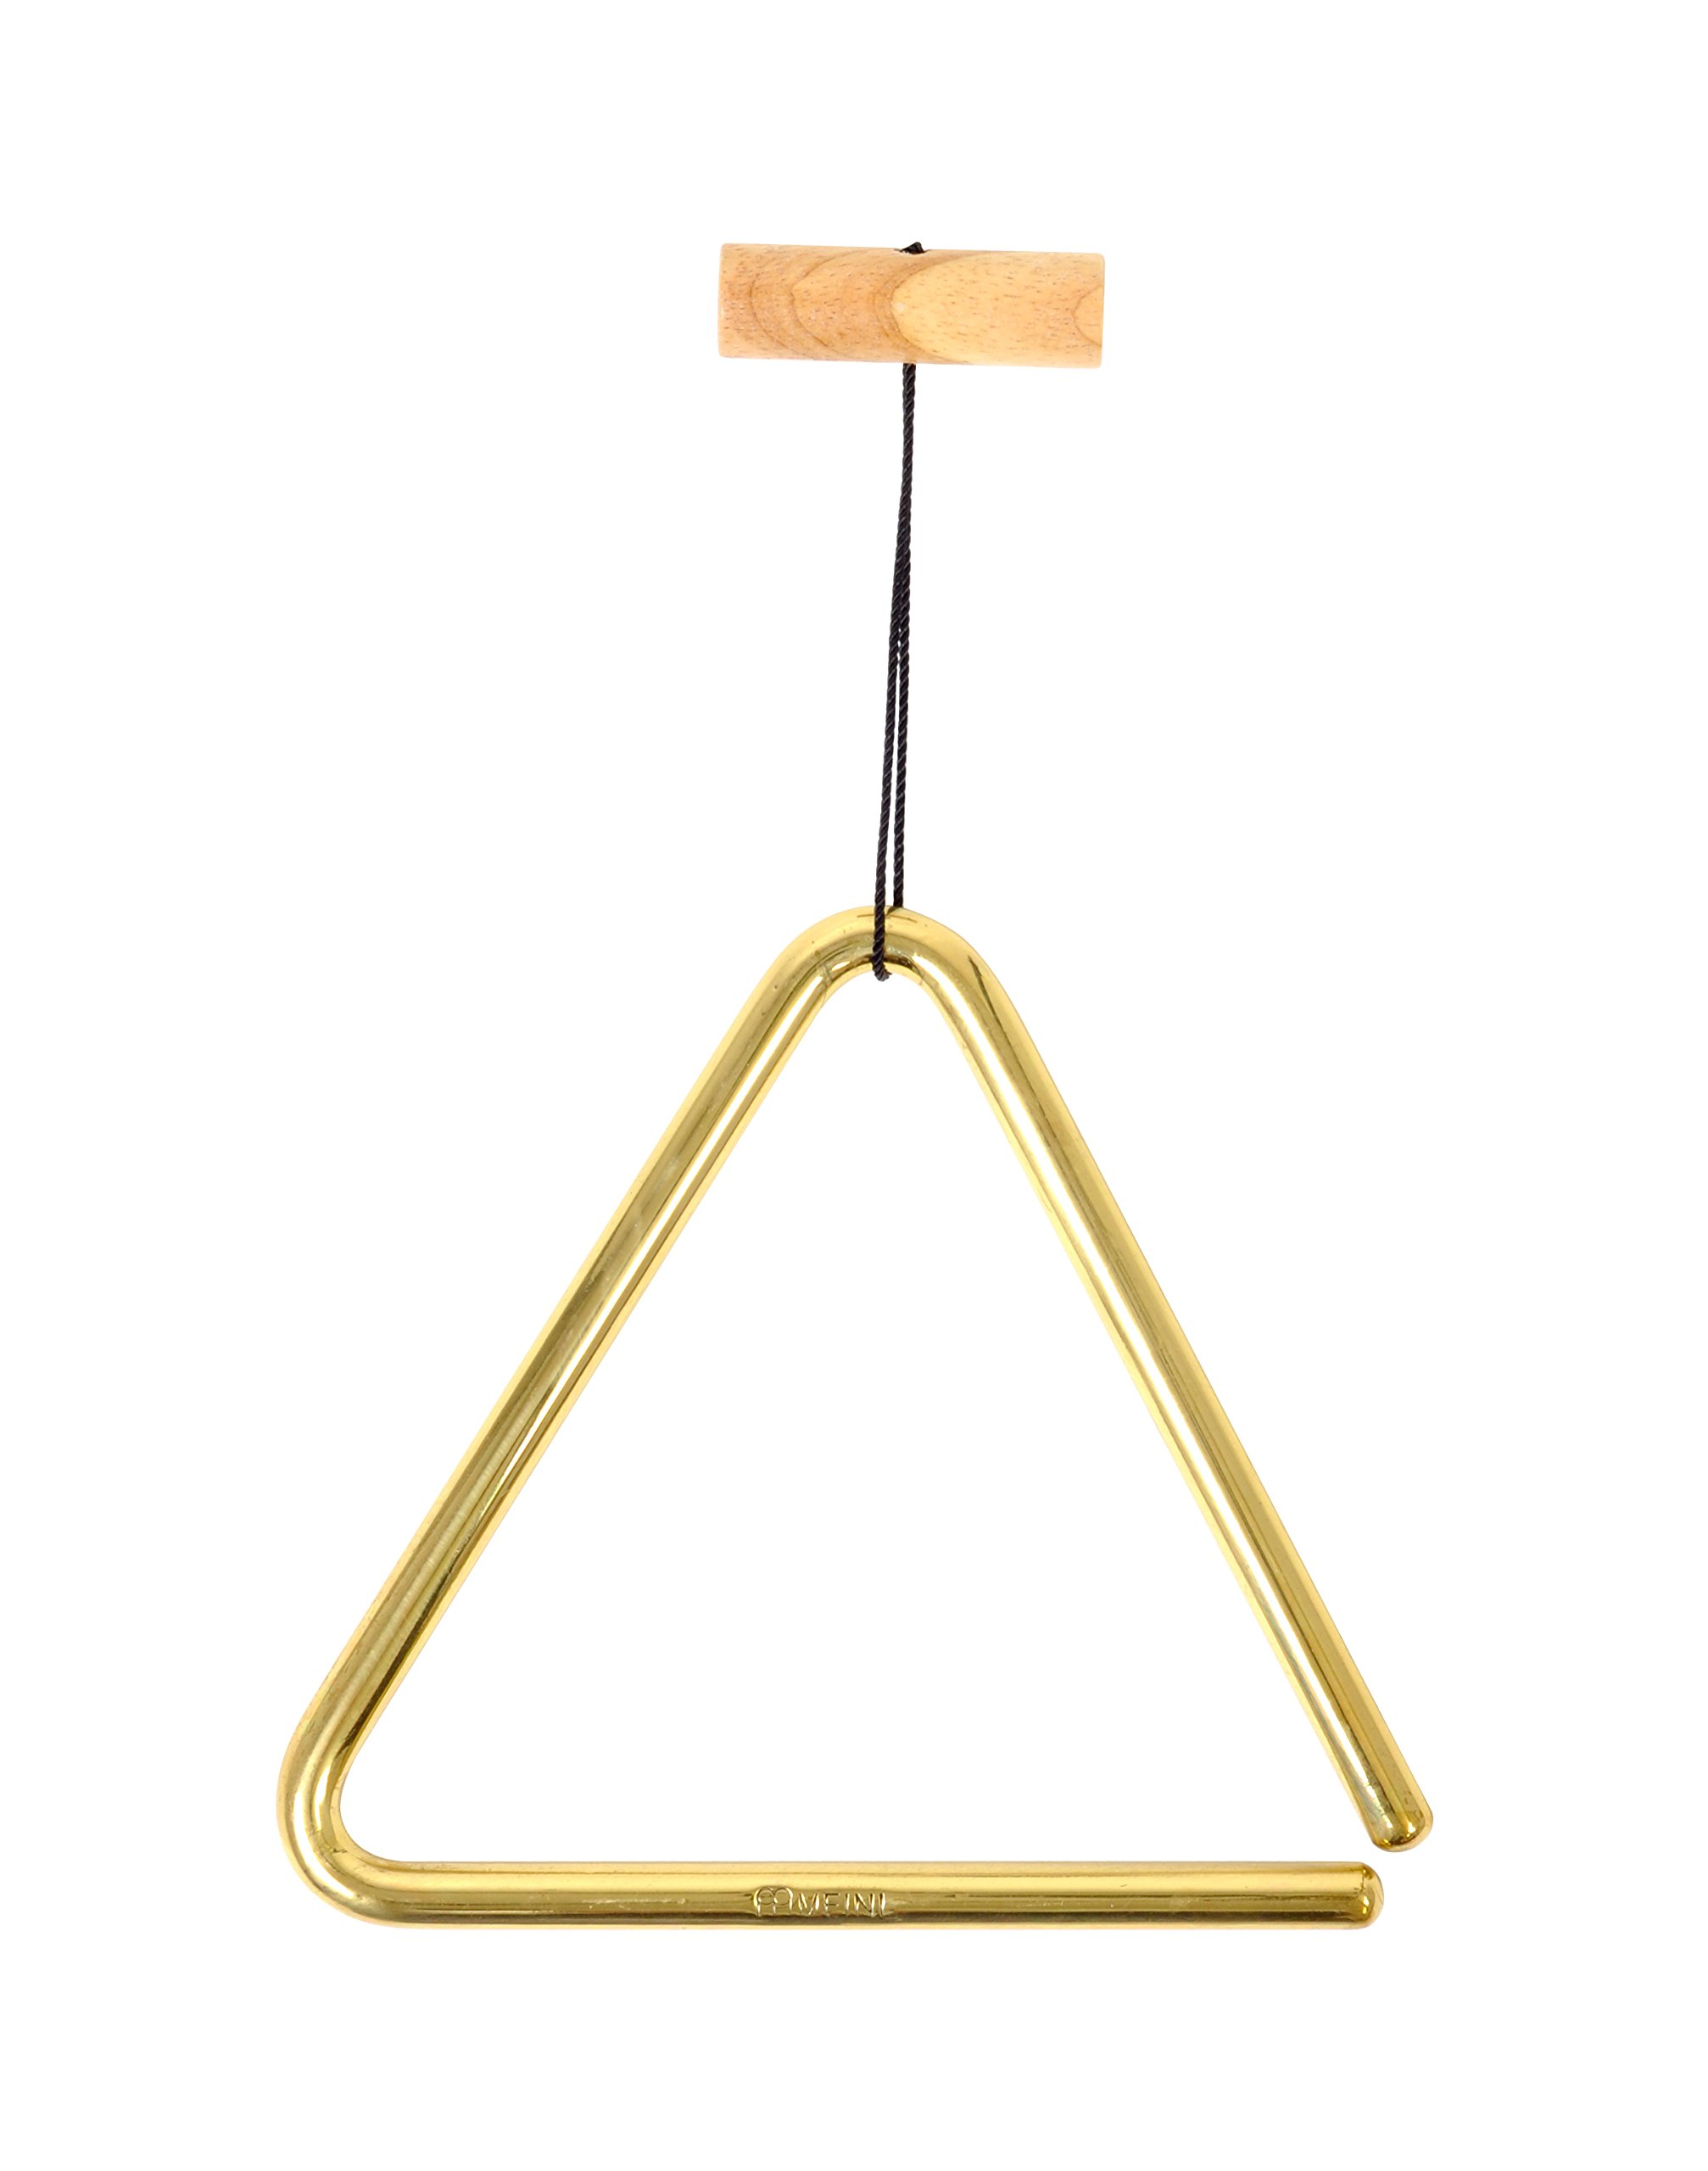 Meinl Percussion TRI15B 6-Inch Solid Brass Triangle with Metal Beater by Meinl Percussion